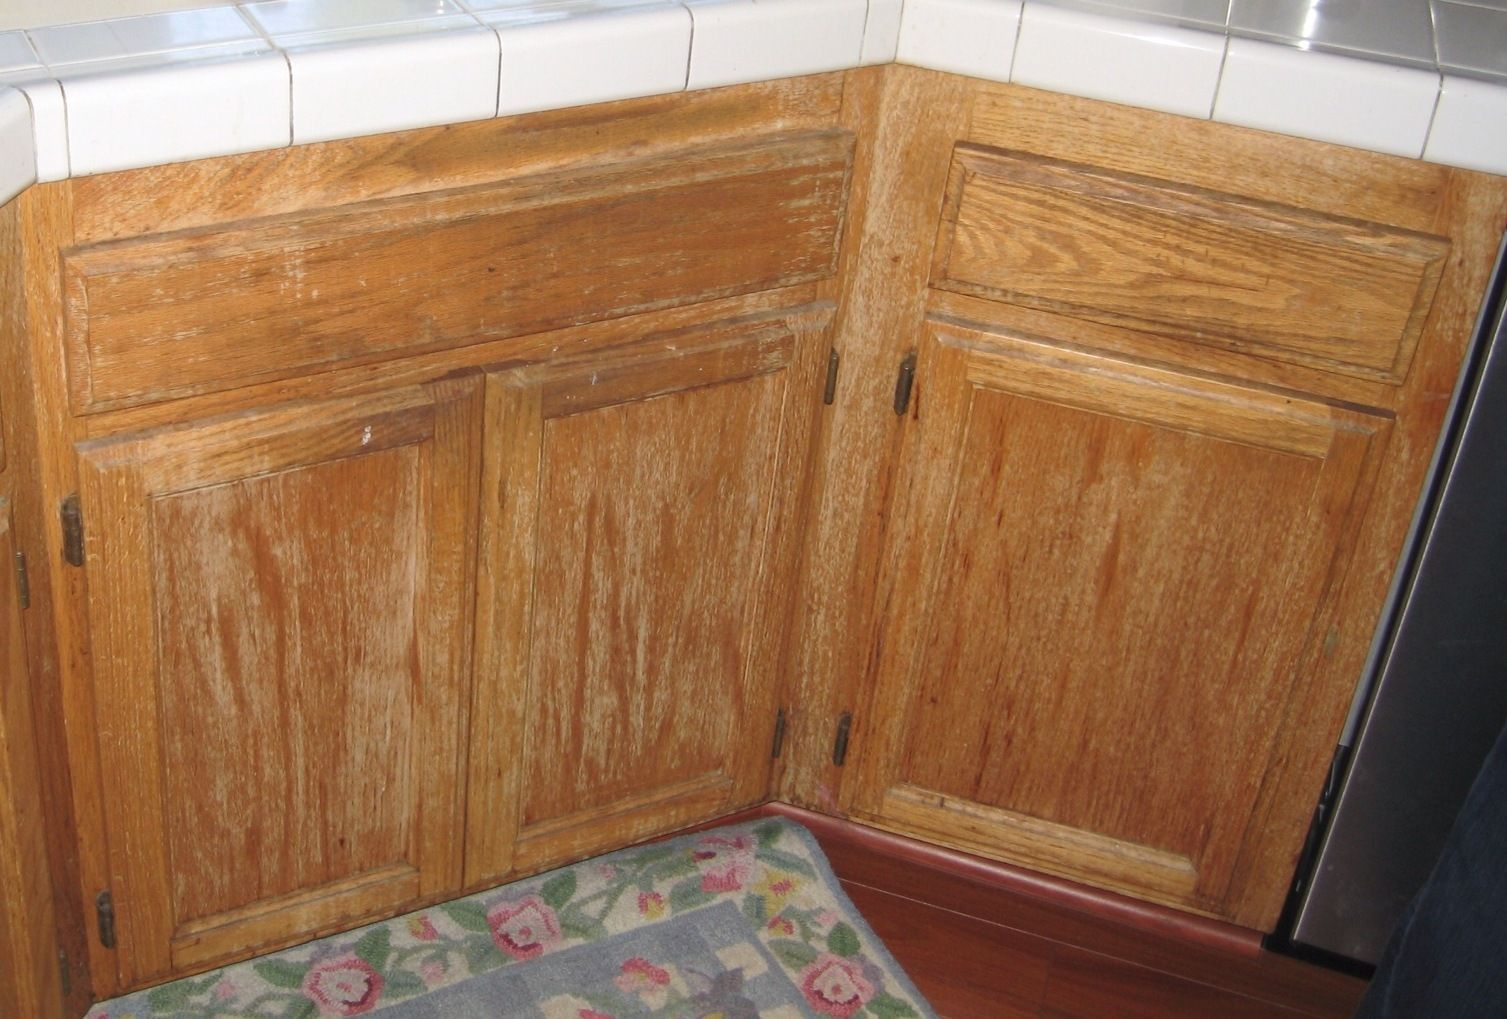 Easy Tips Removing Water Damage From Wood It S Works Kitchen Cabinets For Sale Kitchen Cabinets Repair Cabinets For Sale